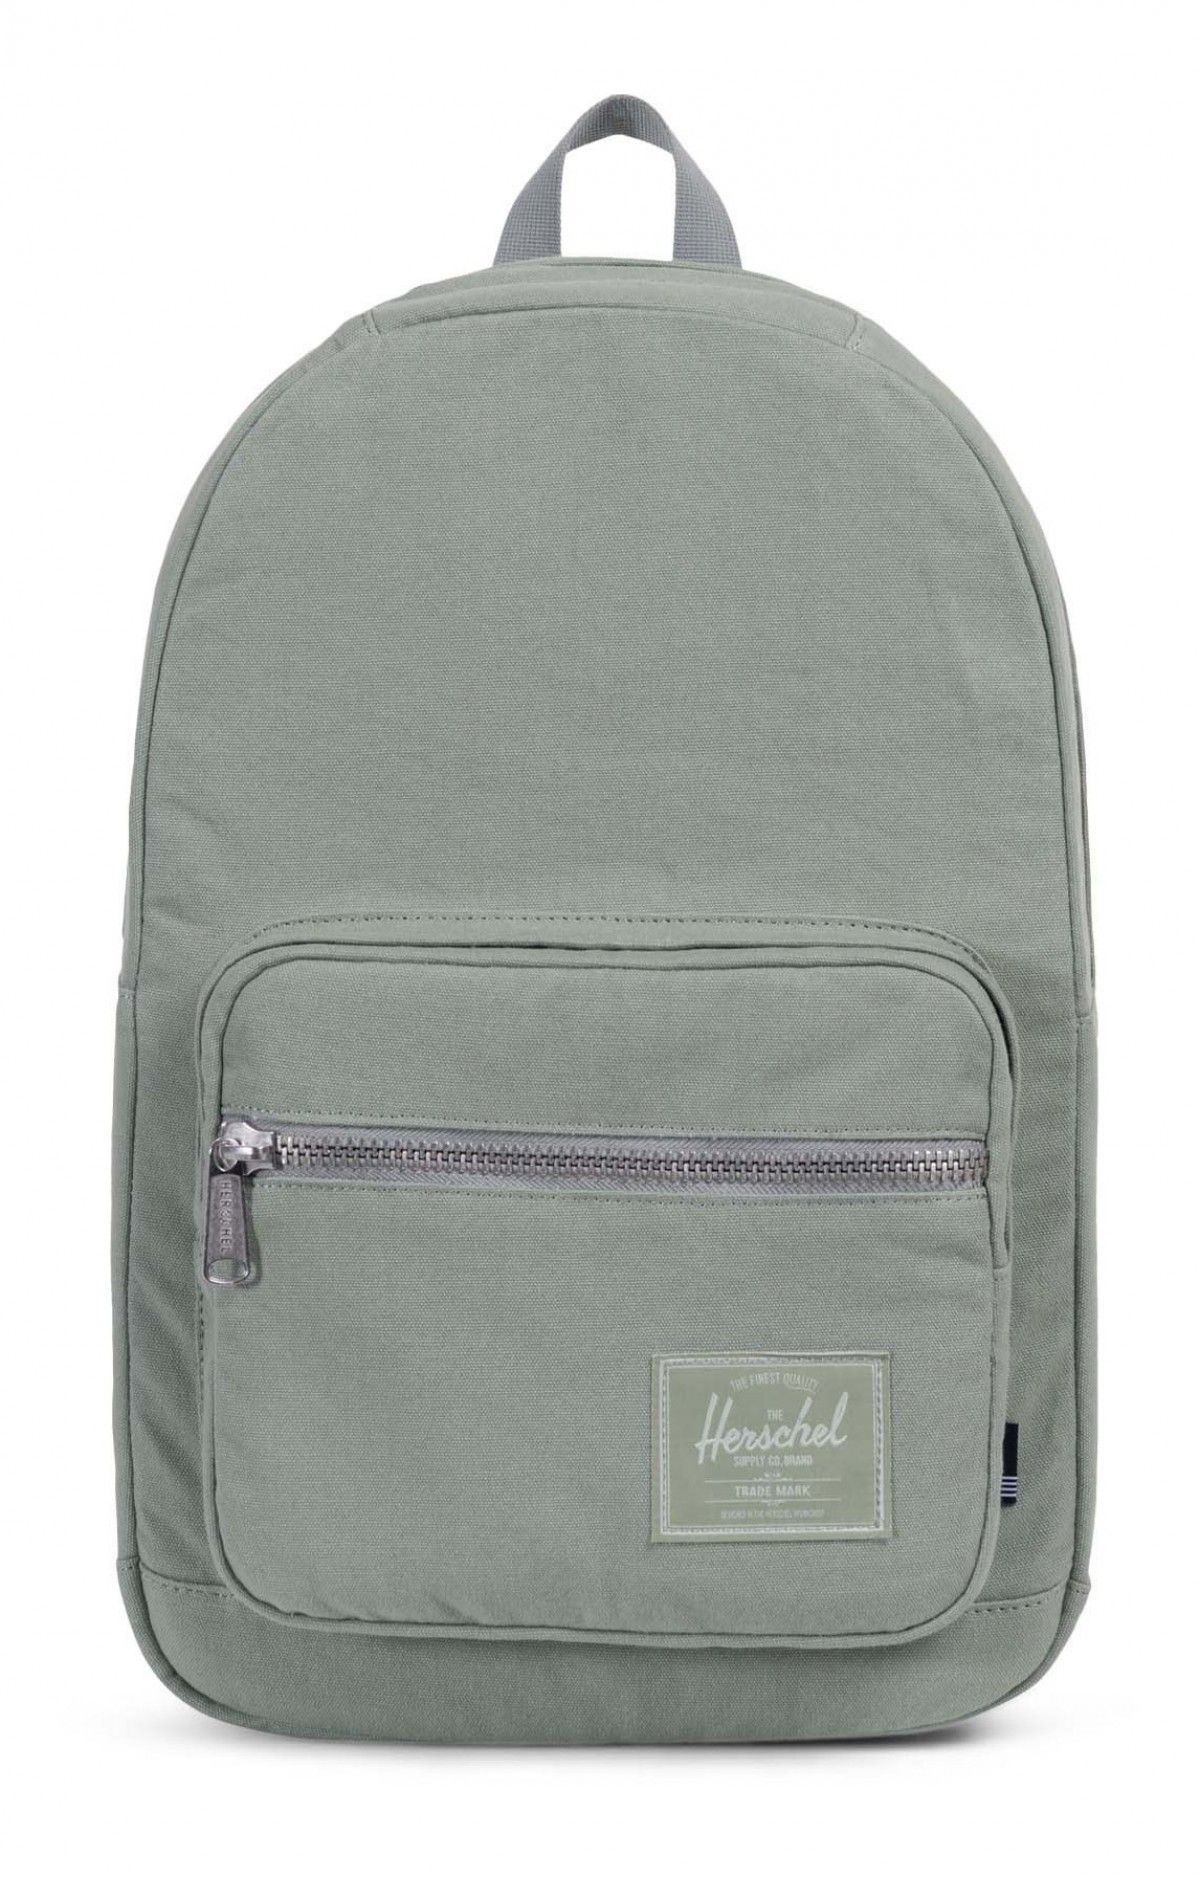 6404c3f8248 Herschel Pop Quiz Backpack Canvas Shadow